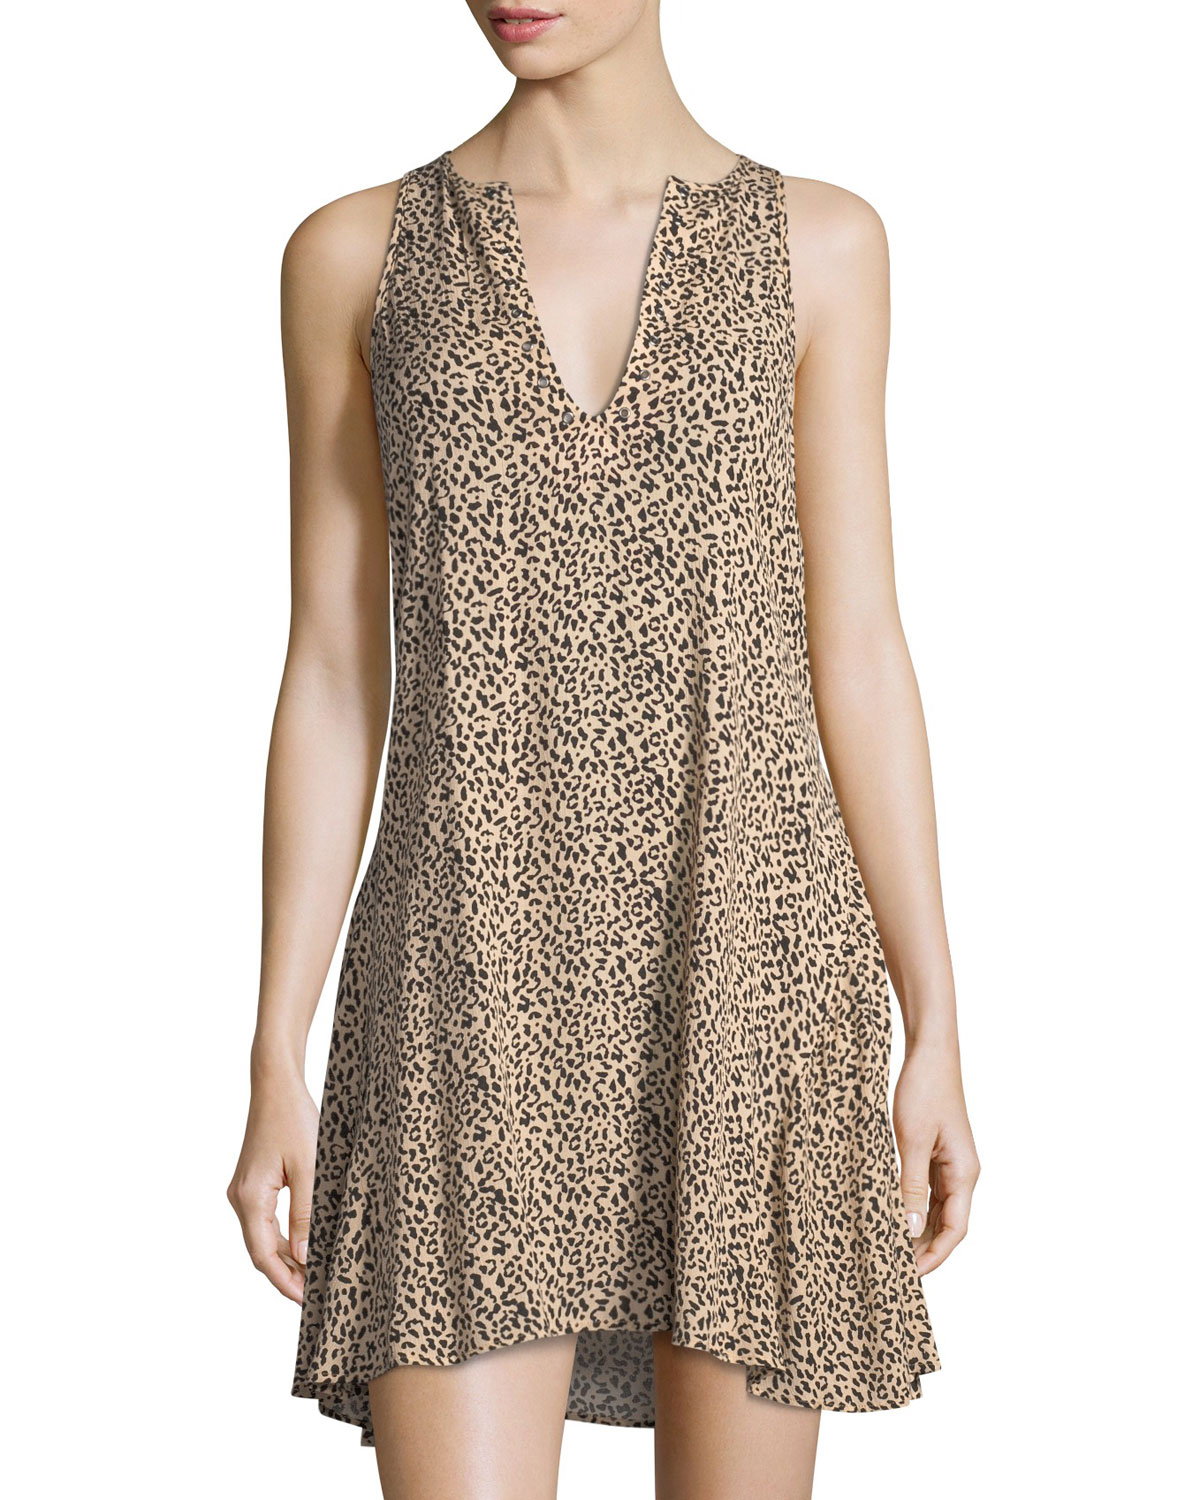 Passenger Leopard-Print Dress